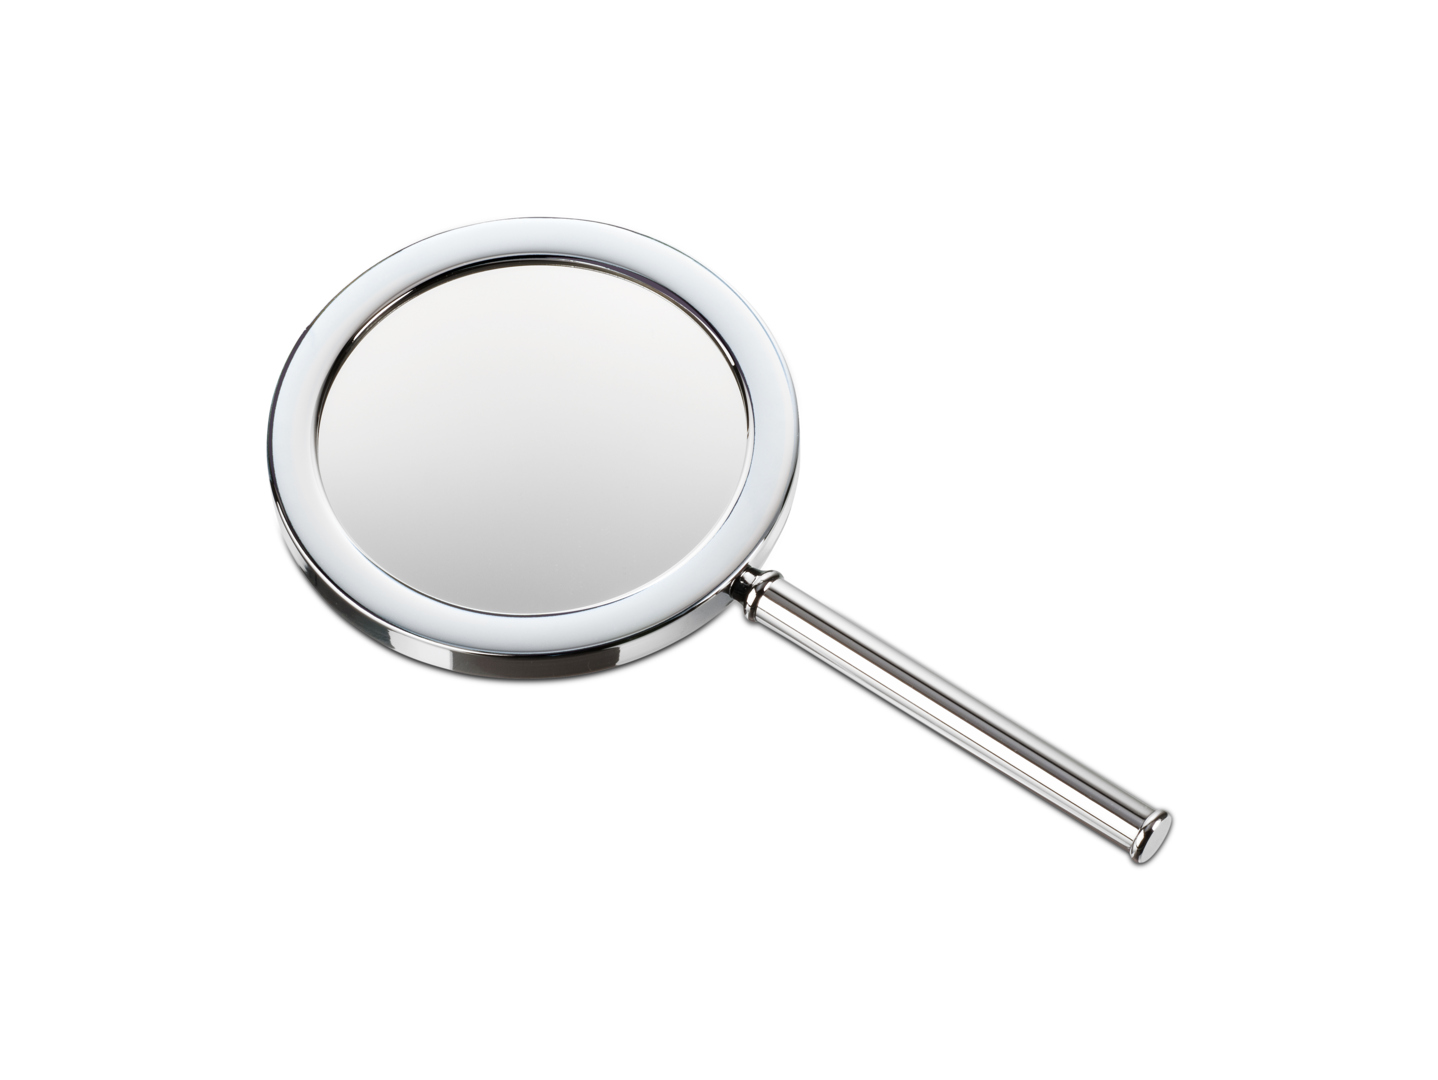 Decor Walther 0101800 DW-SPT 7 Hand Cosmetic Mirror - Chrome